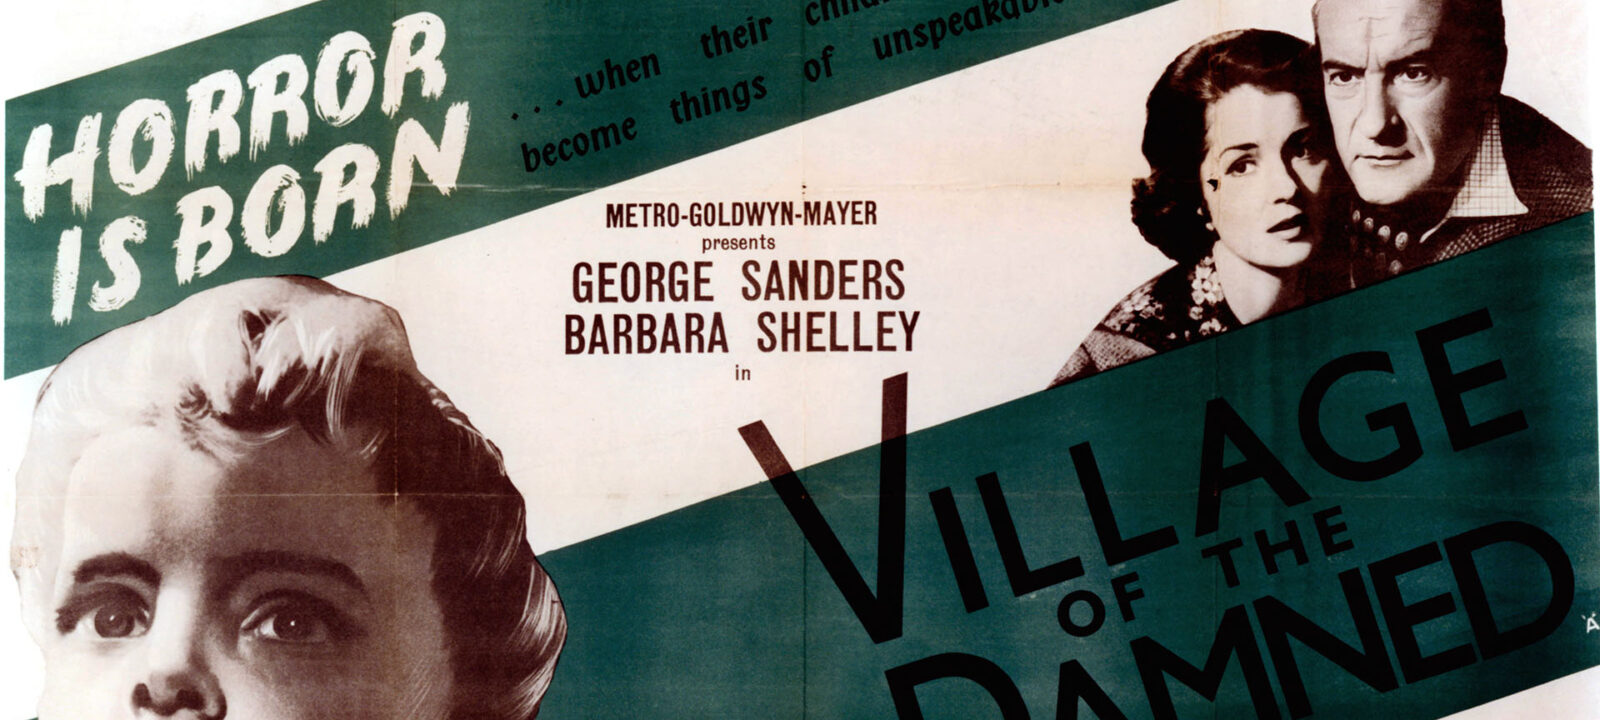 Barbara Shelley And George Sanders In 'Village Of The Damned'